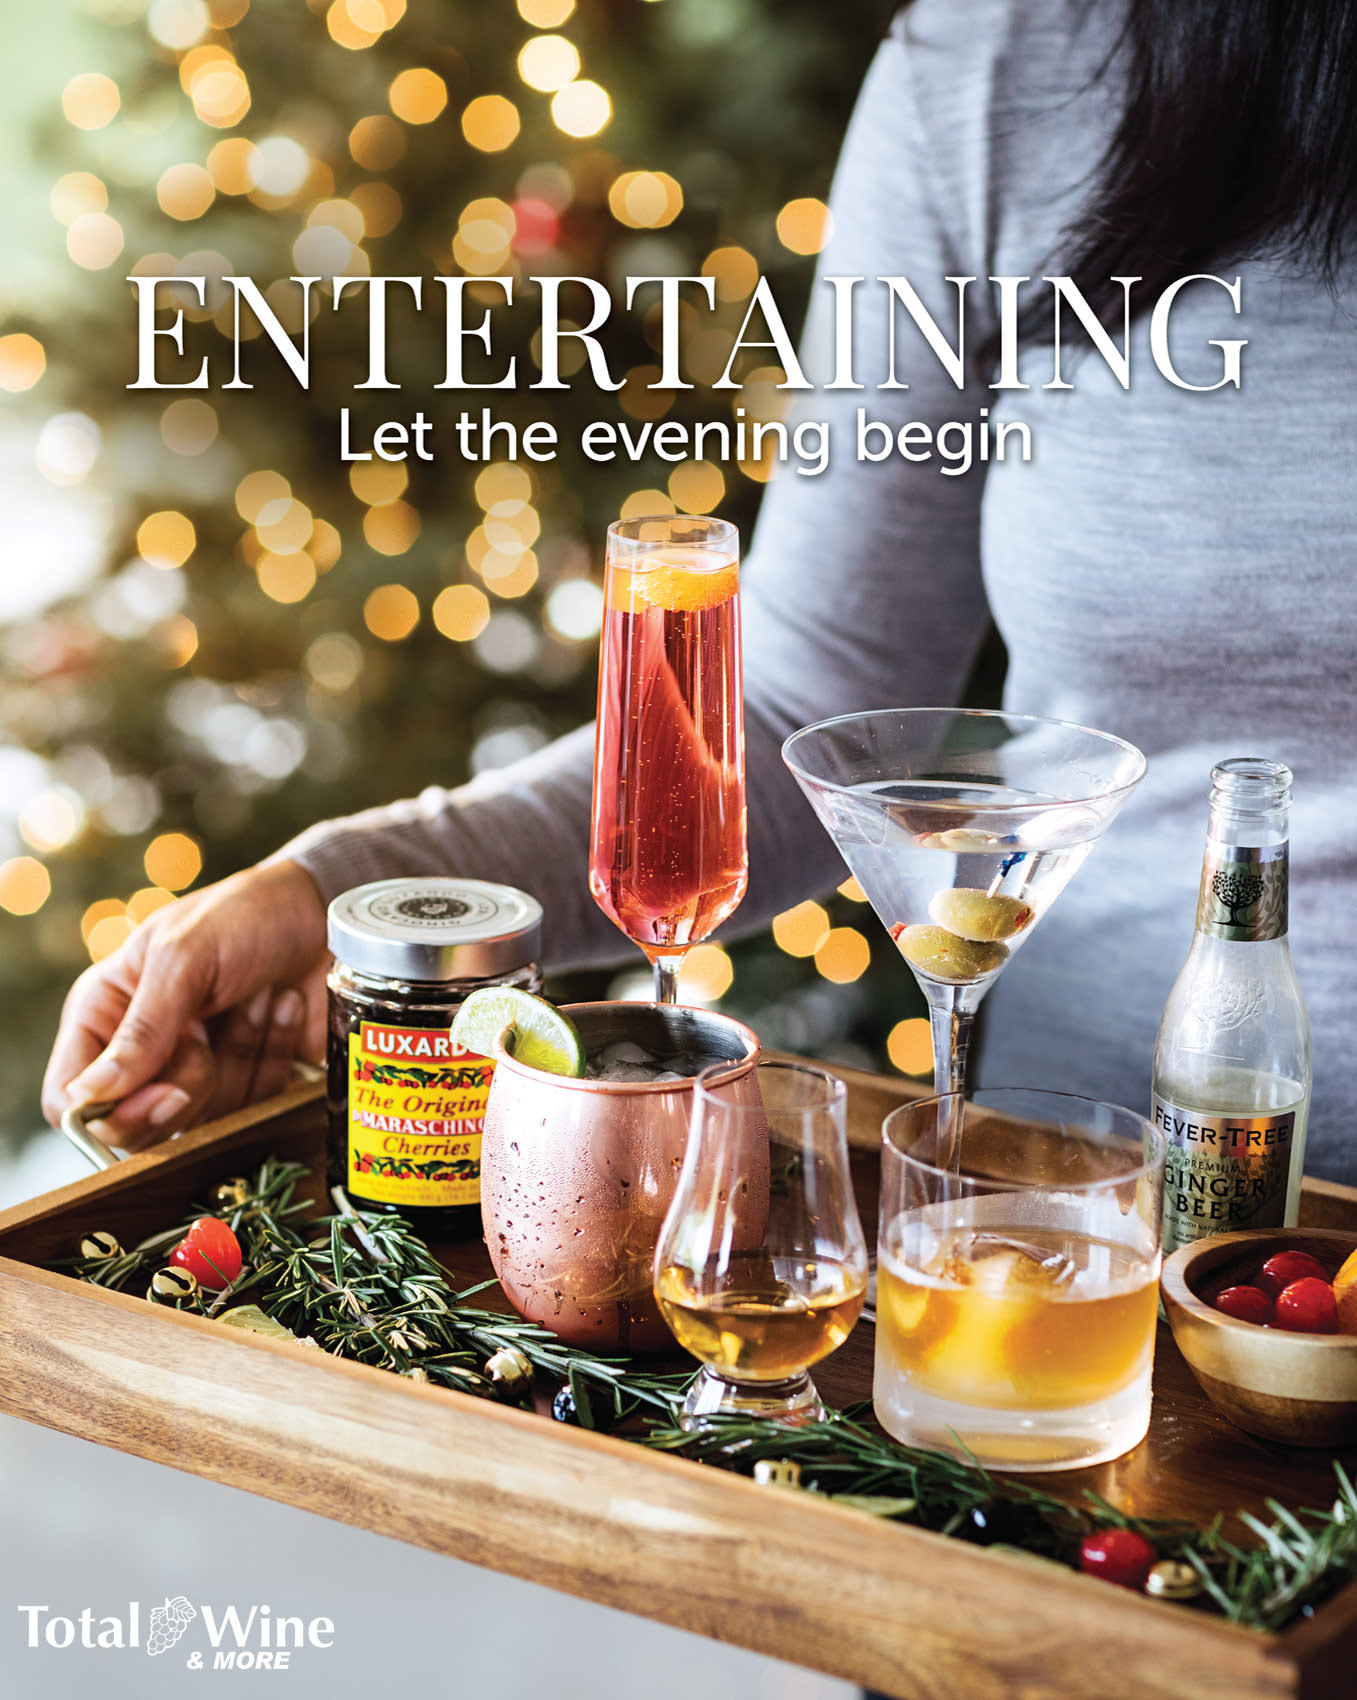 hands holding liquors and glasses on tray by christmas tree for total wine & more advertisement, washington dc commercial photography